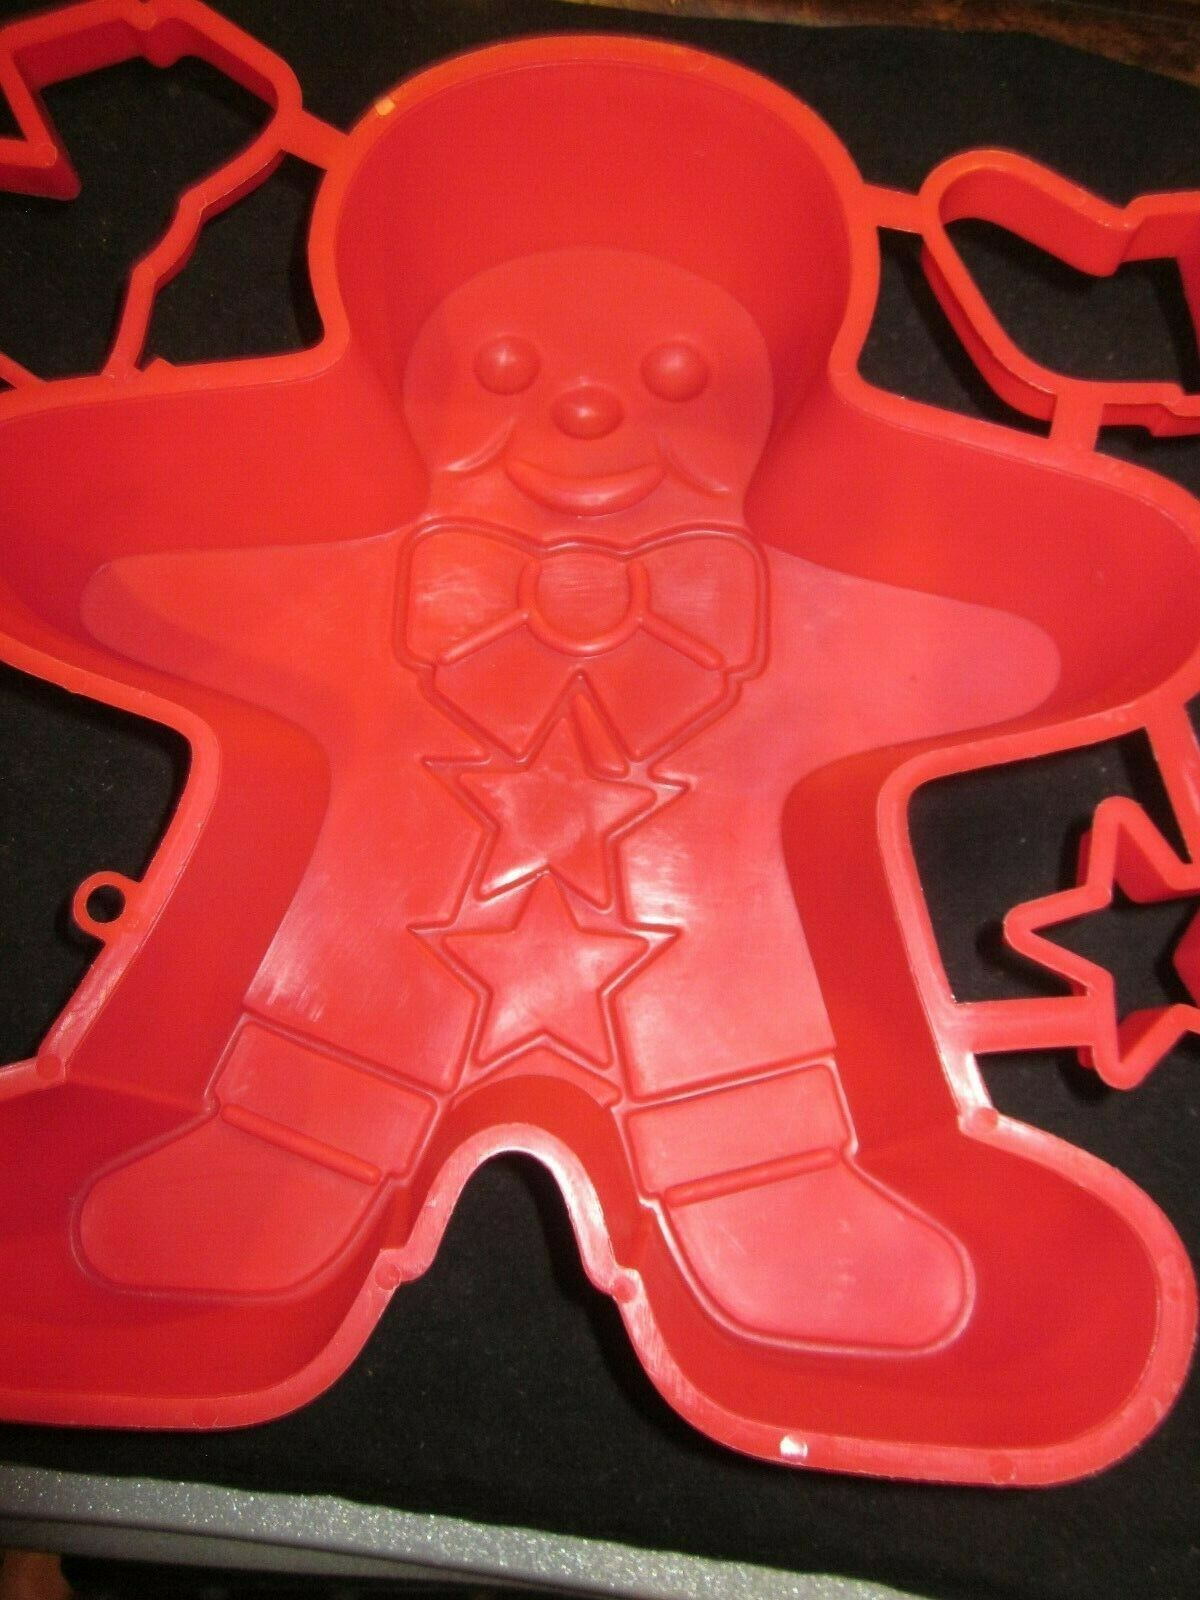 Vintage Large Jll-o Gingerbread Man Mold & Jiggler Cookie Cutters Brand New image 2